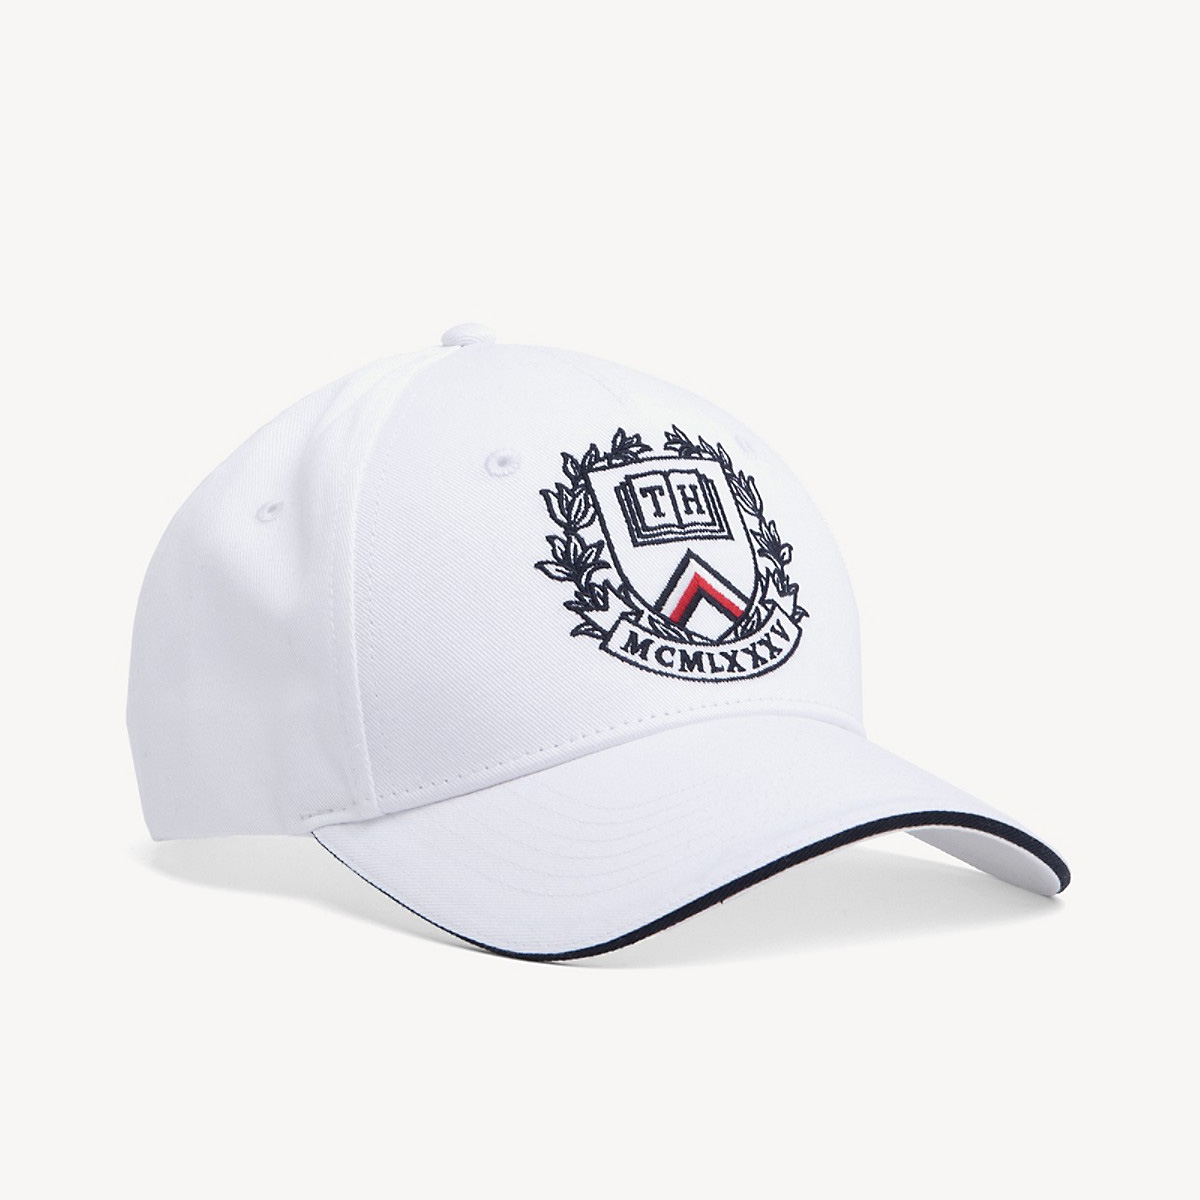 non-tommy-hilfiger-33